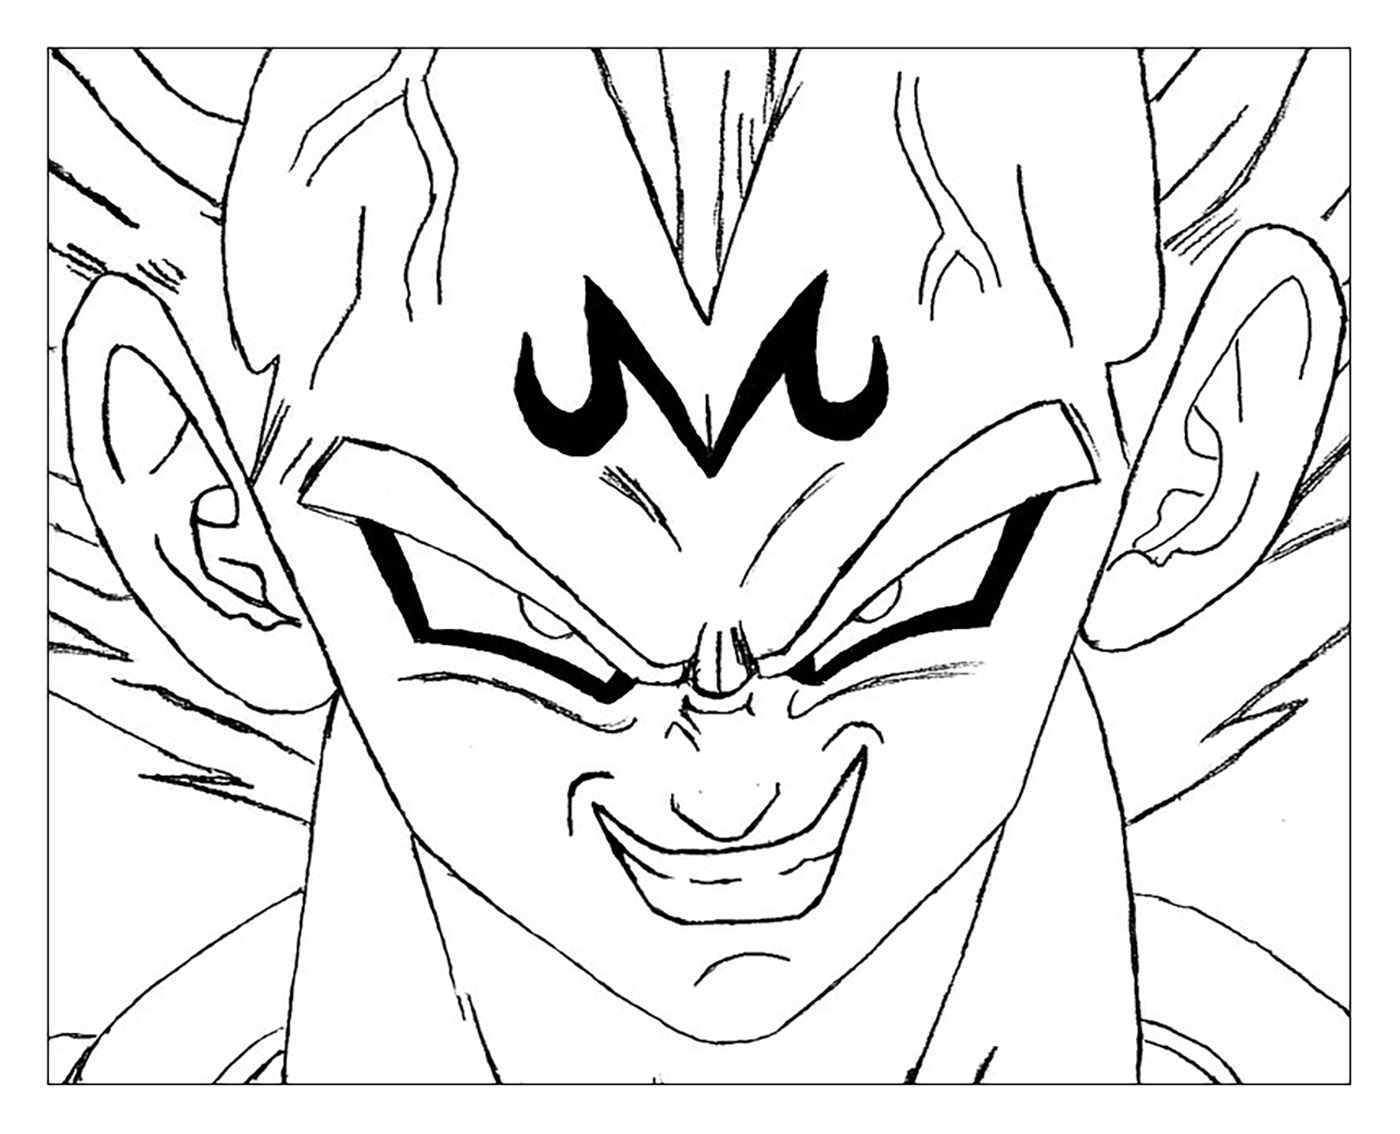 Facile dragon ball majin vegeta coloriage dragon ball z coloriages pour enfants - Dessin dragon ball z facile ...